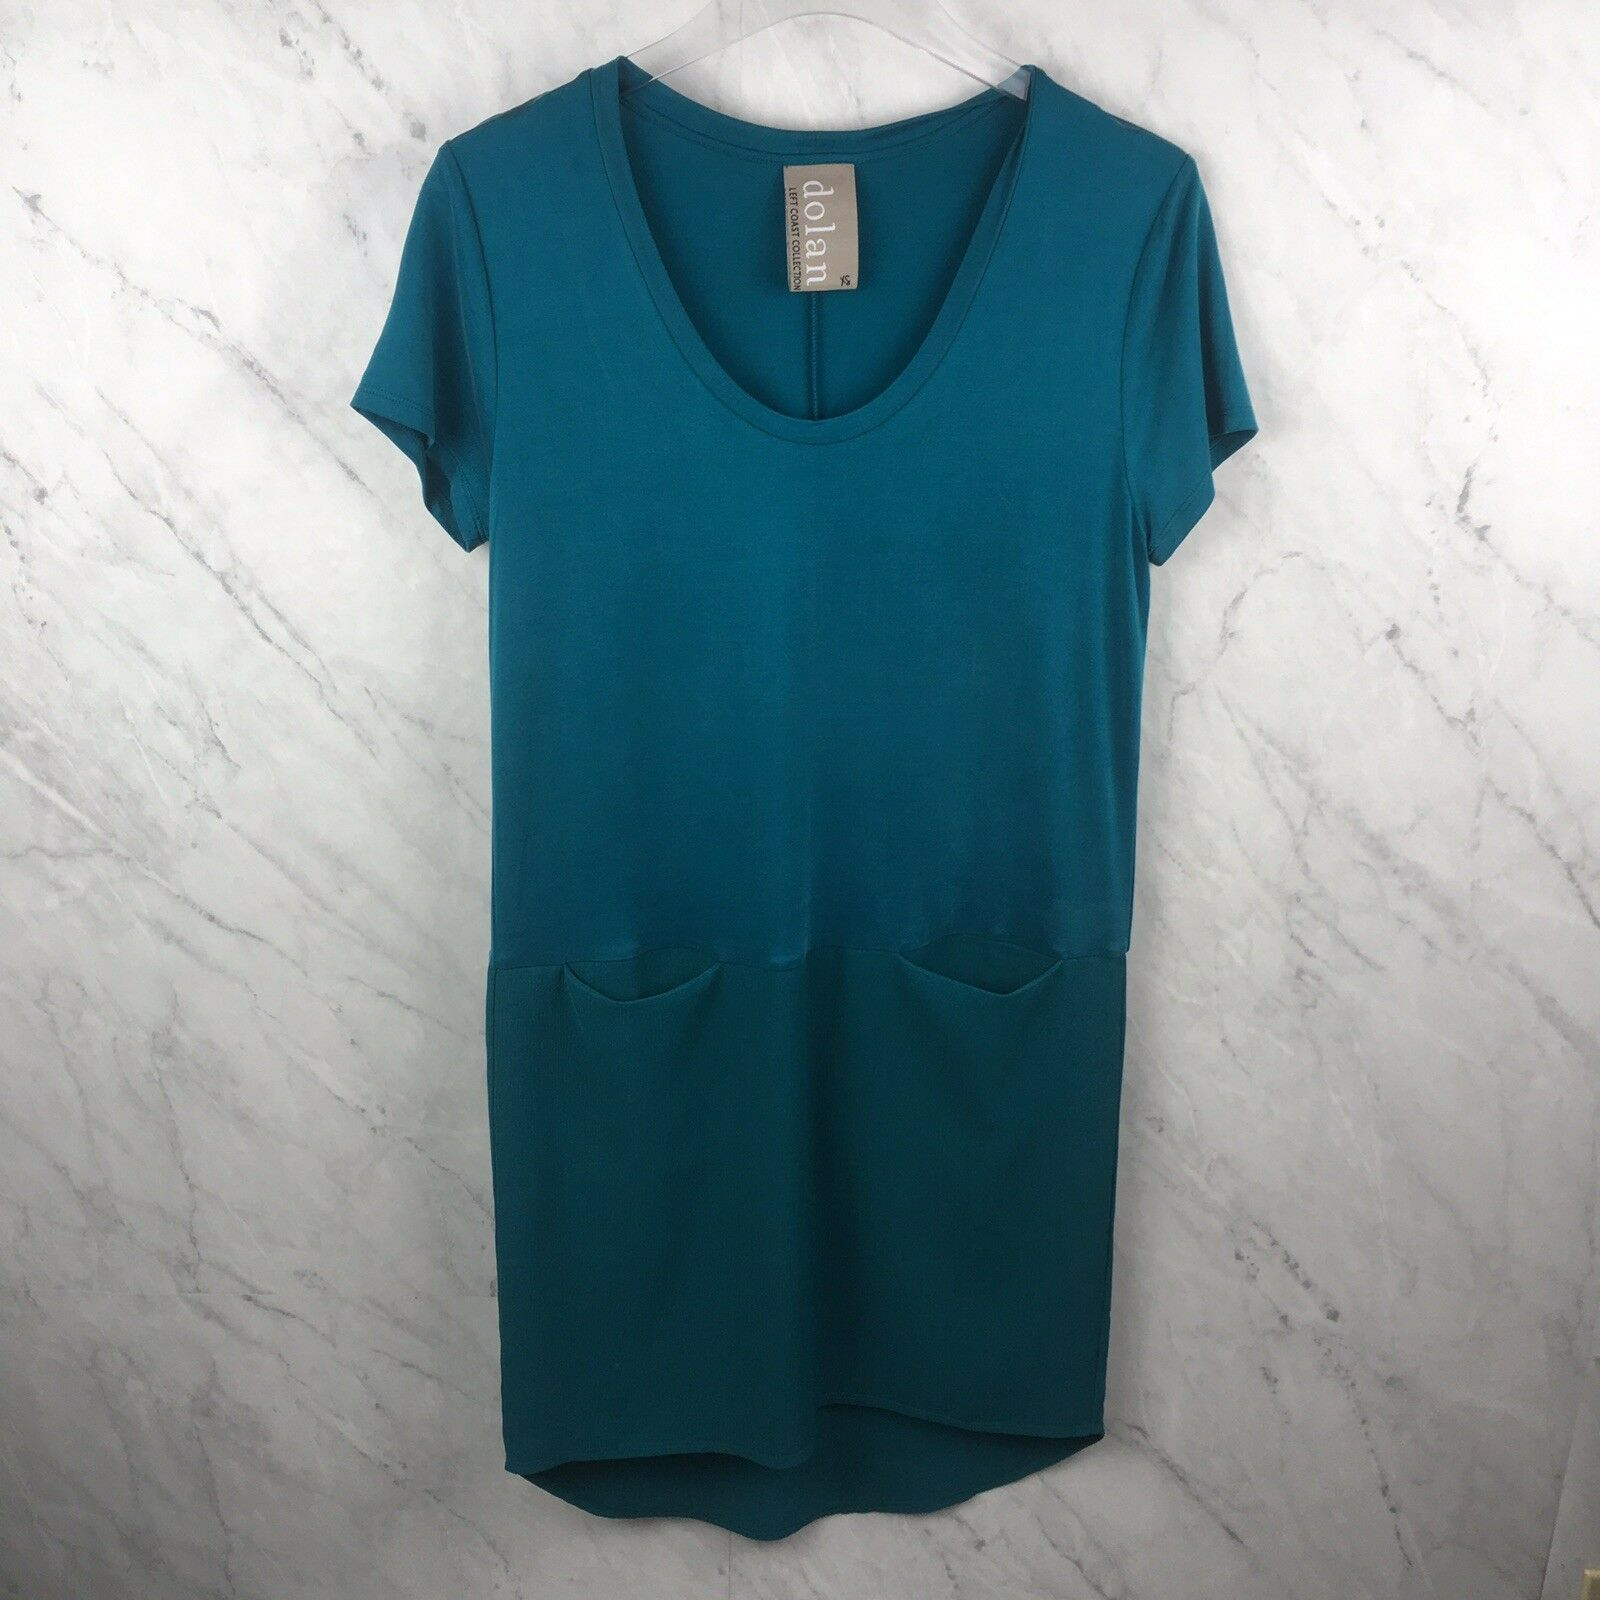 19b5c450702 Dolan Dress Size XS bluee Teal Short Sleeve Anthropologie Womens nwvujt4975- Dresses